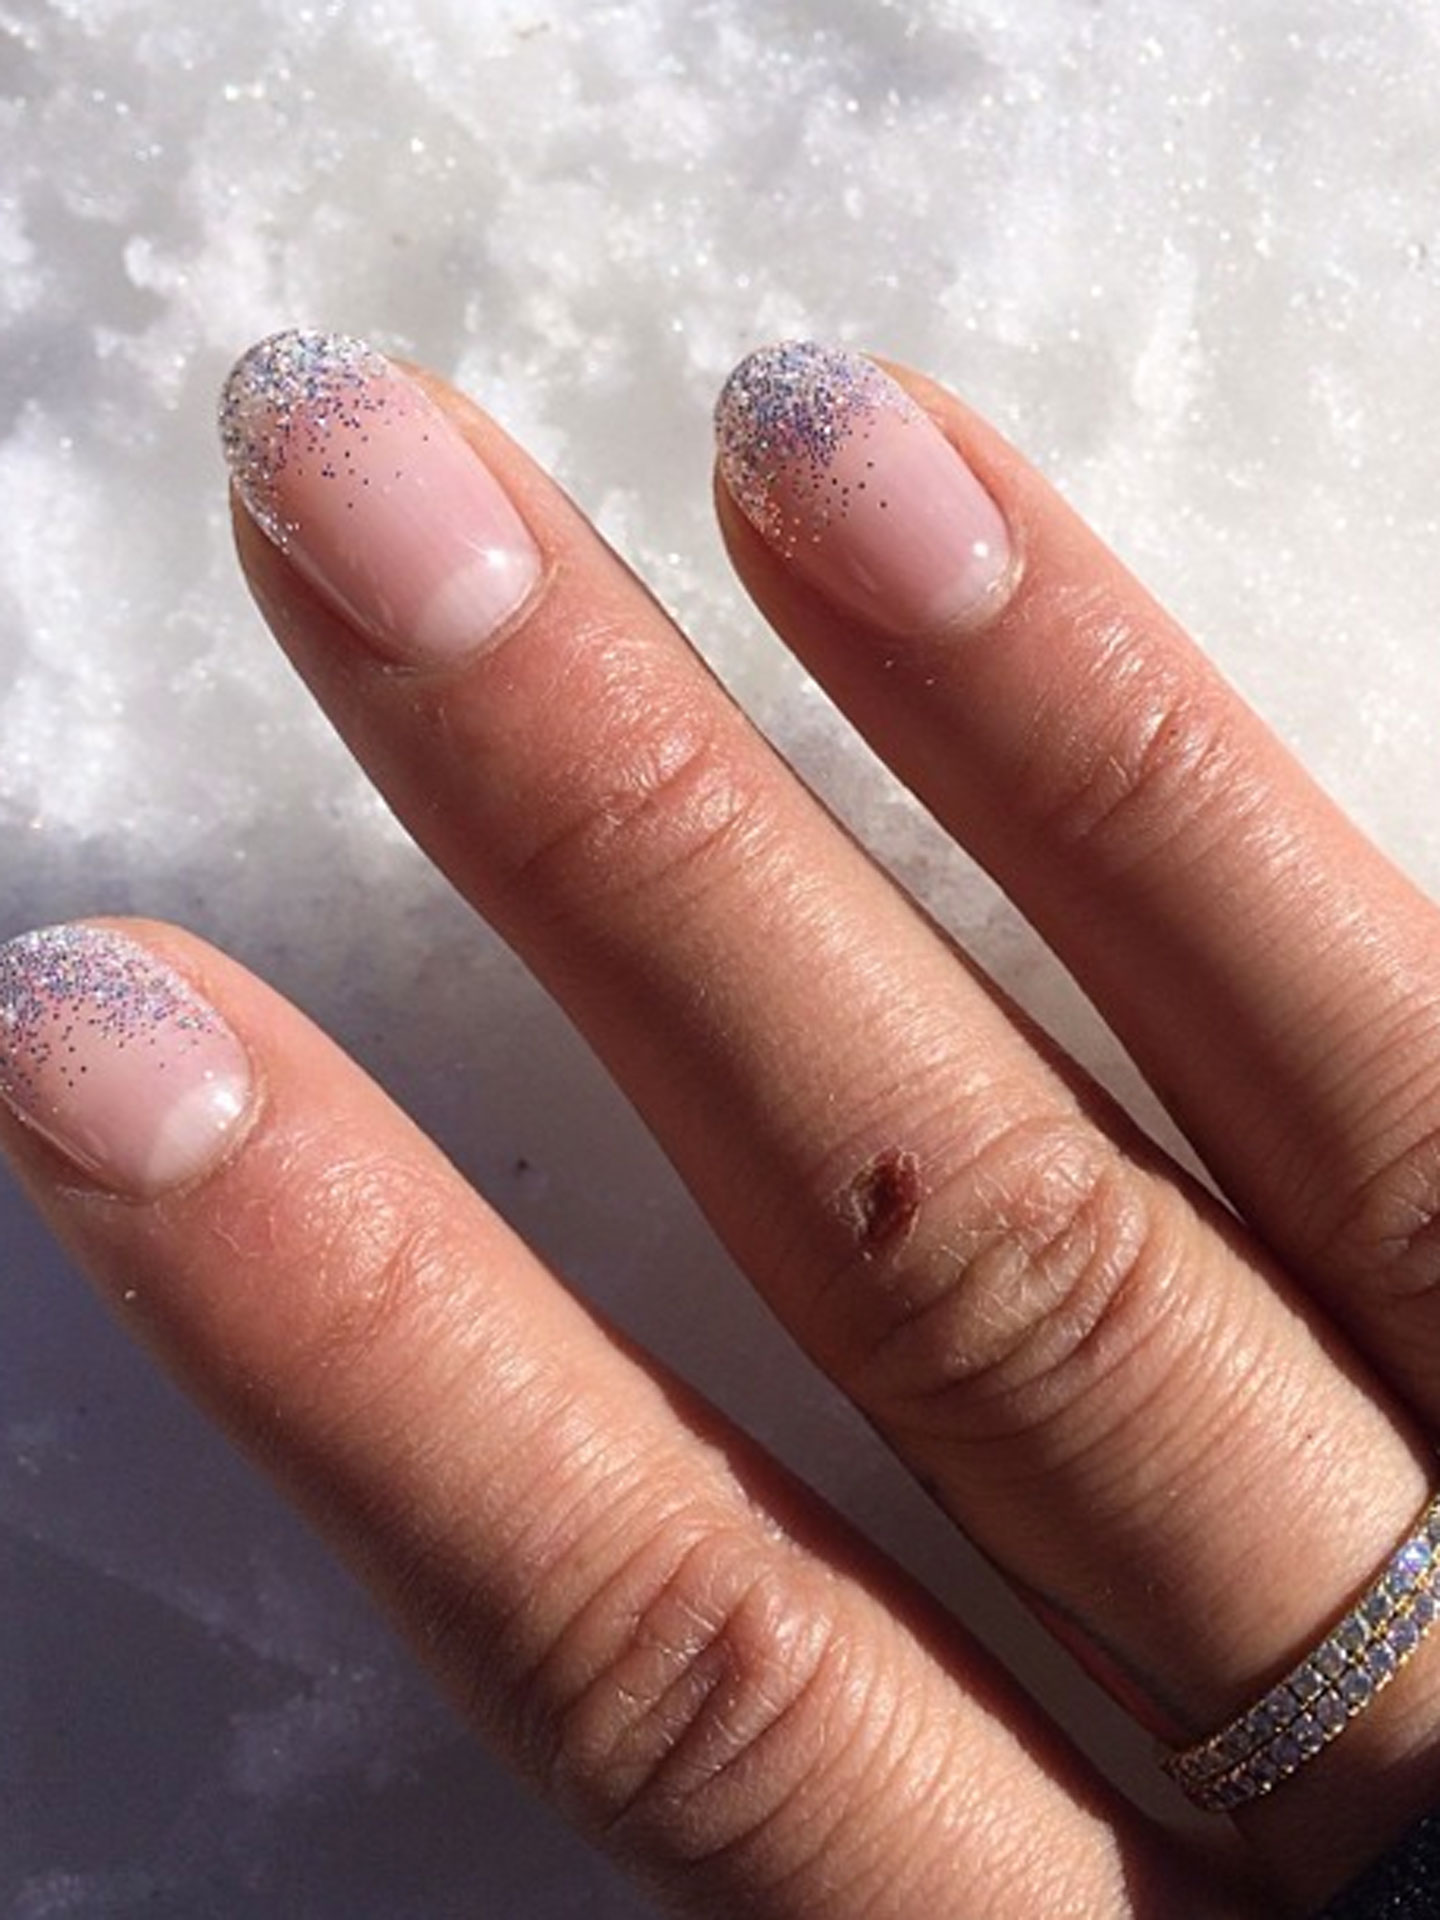 43 Celebrity Nail Art Designs That Are Just Goals Blissed Hub